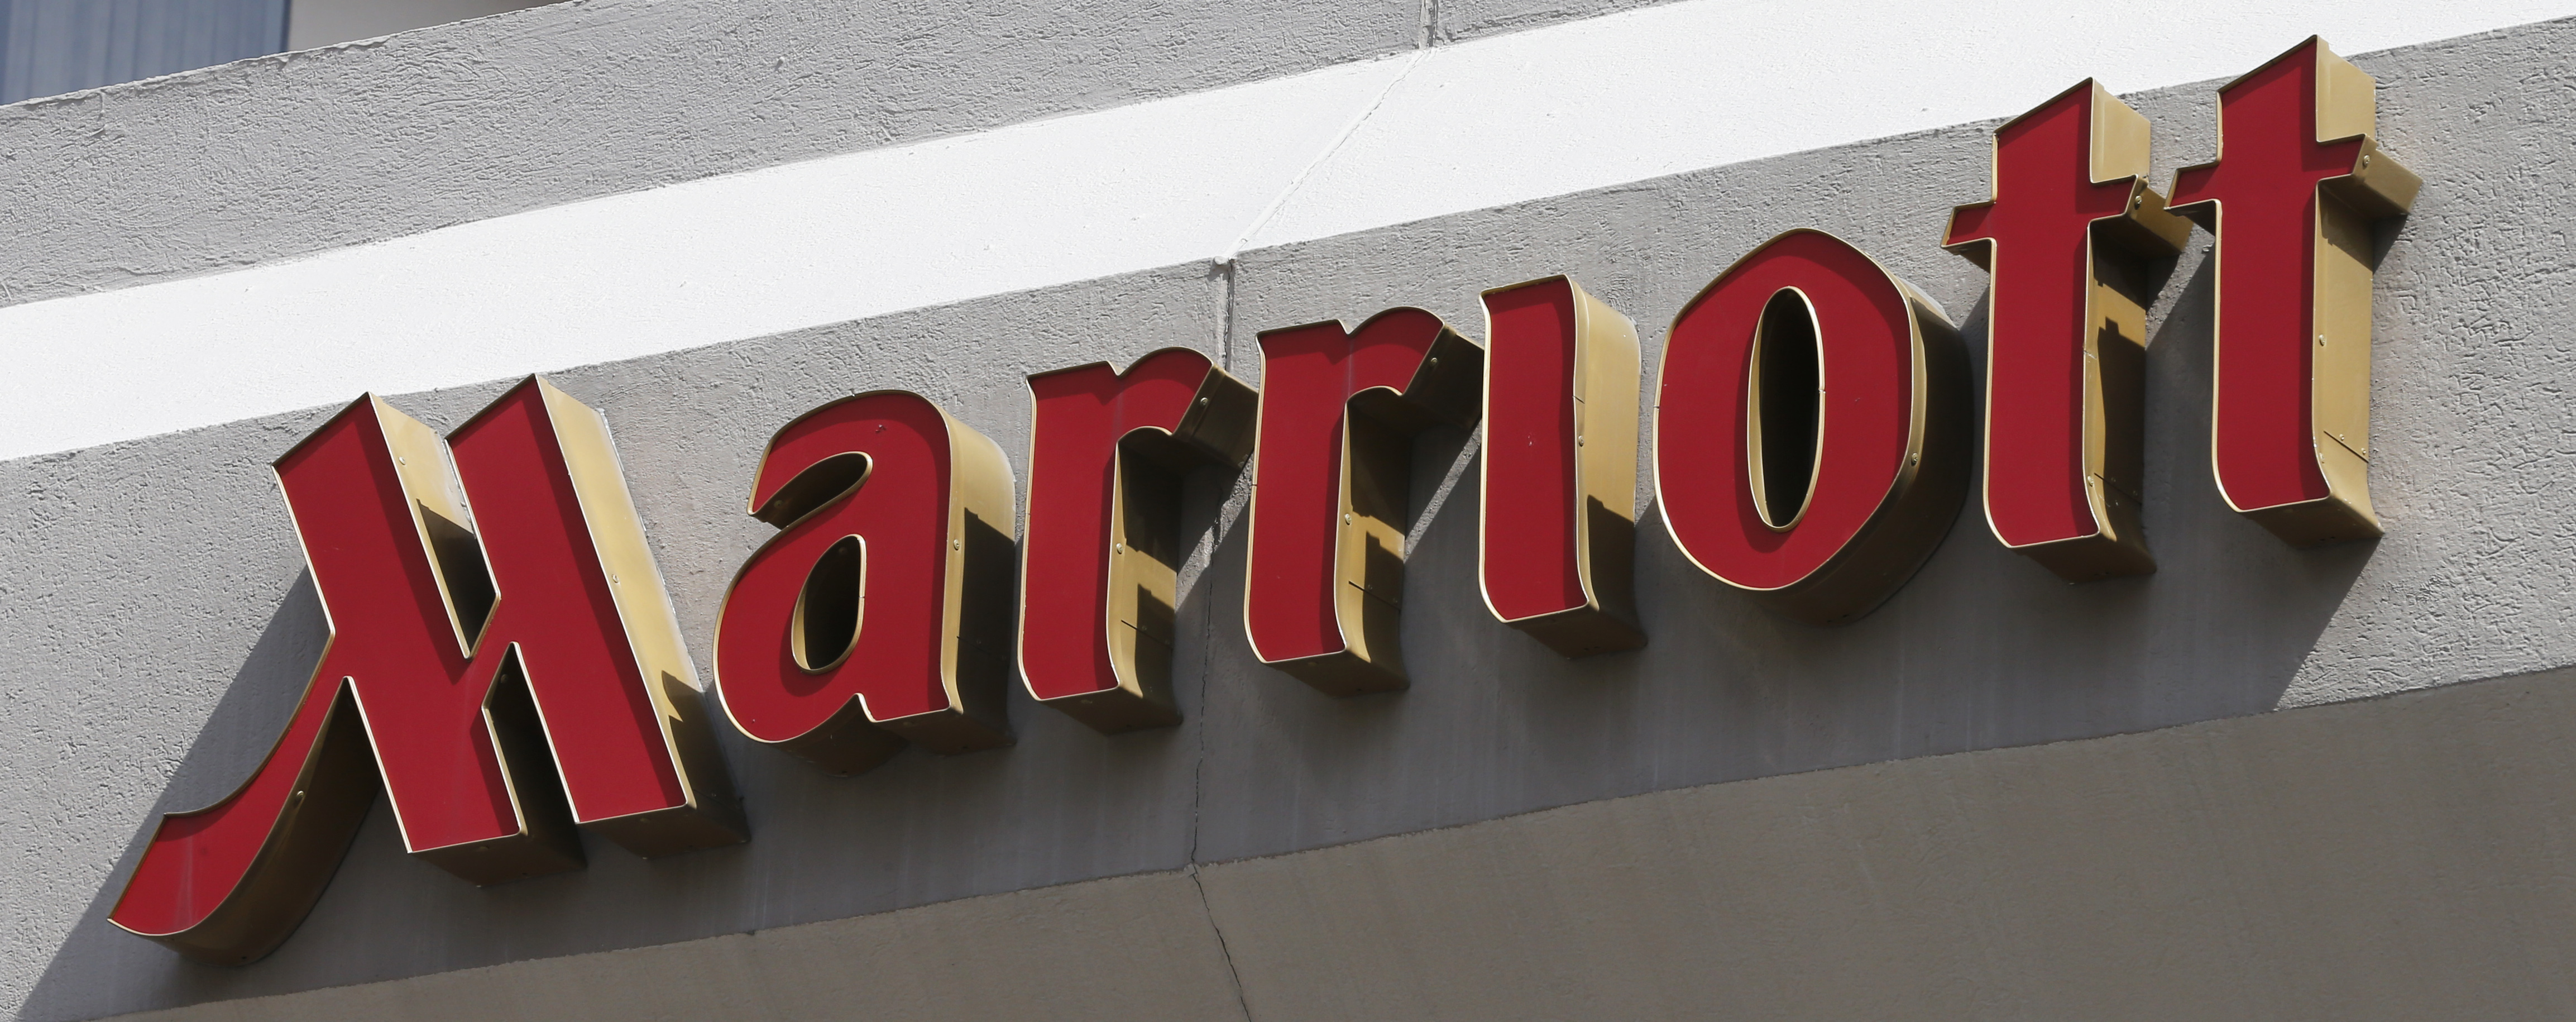 Marriott headquarters will stay in Bethesda